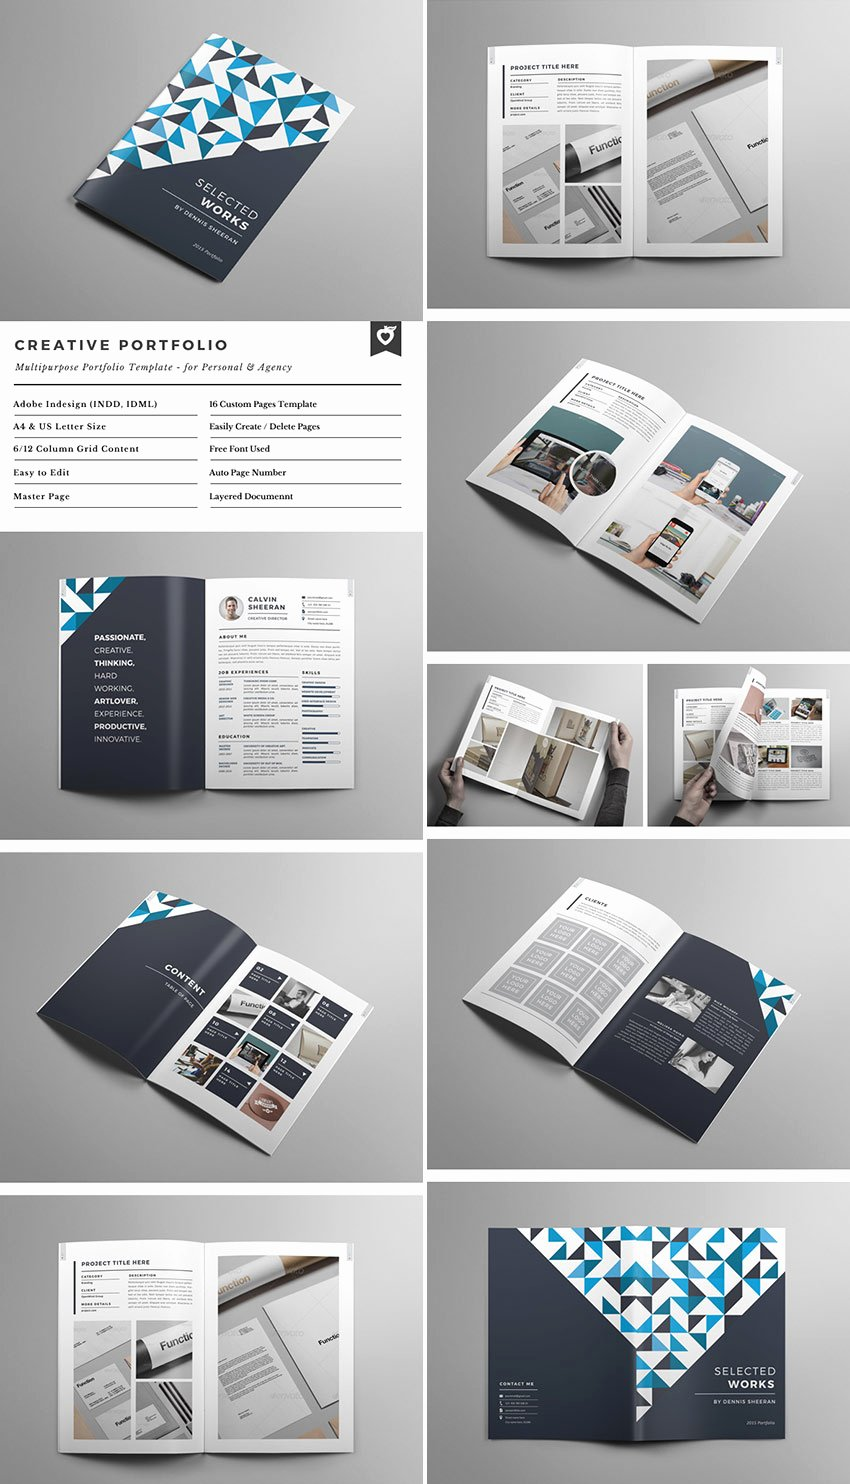 Indesign Portfolio Template Free Elegant 20 Best Indesign Brochure Templates for Creative